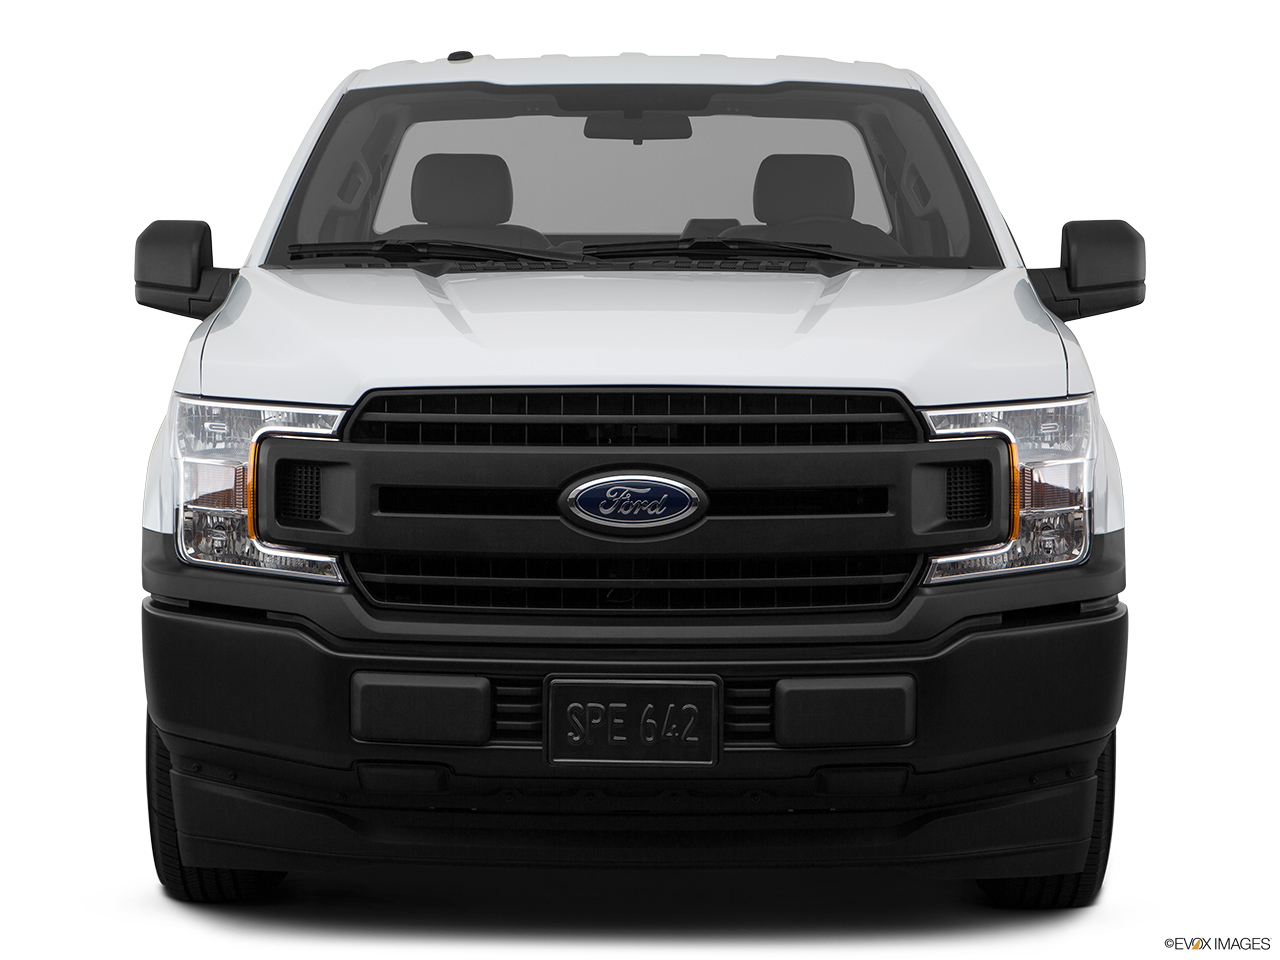 Ford F-150 2018 3.5L Regular Cab XL (2WD), Saudi Arabia, Low/wide front.